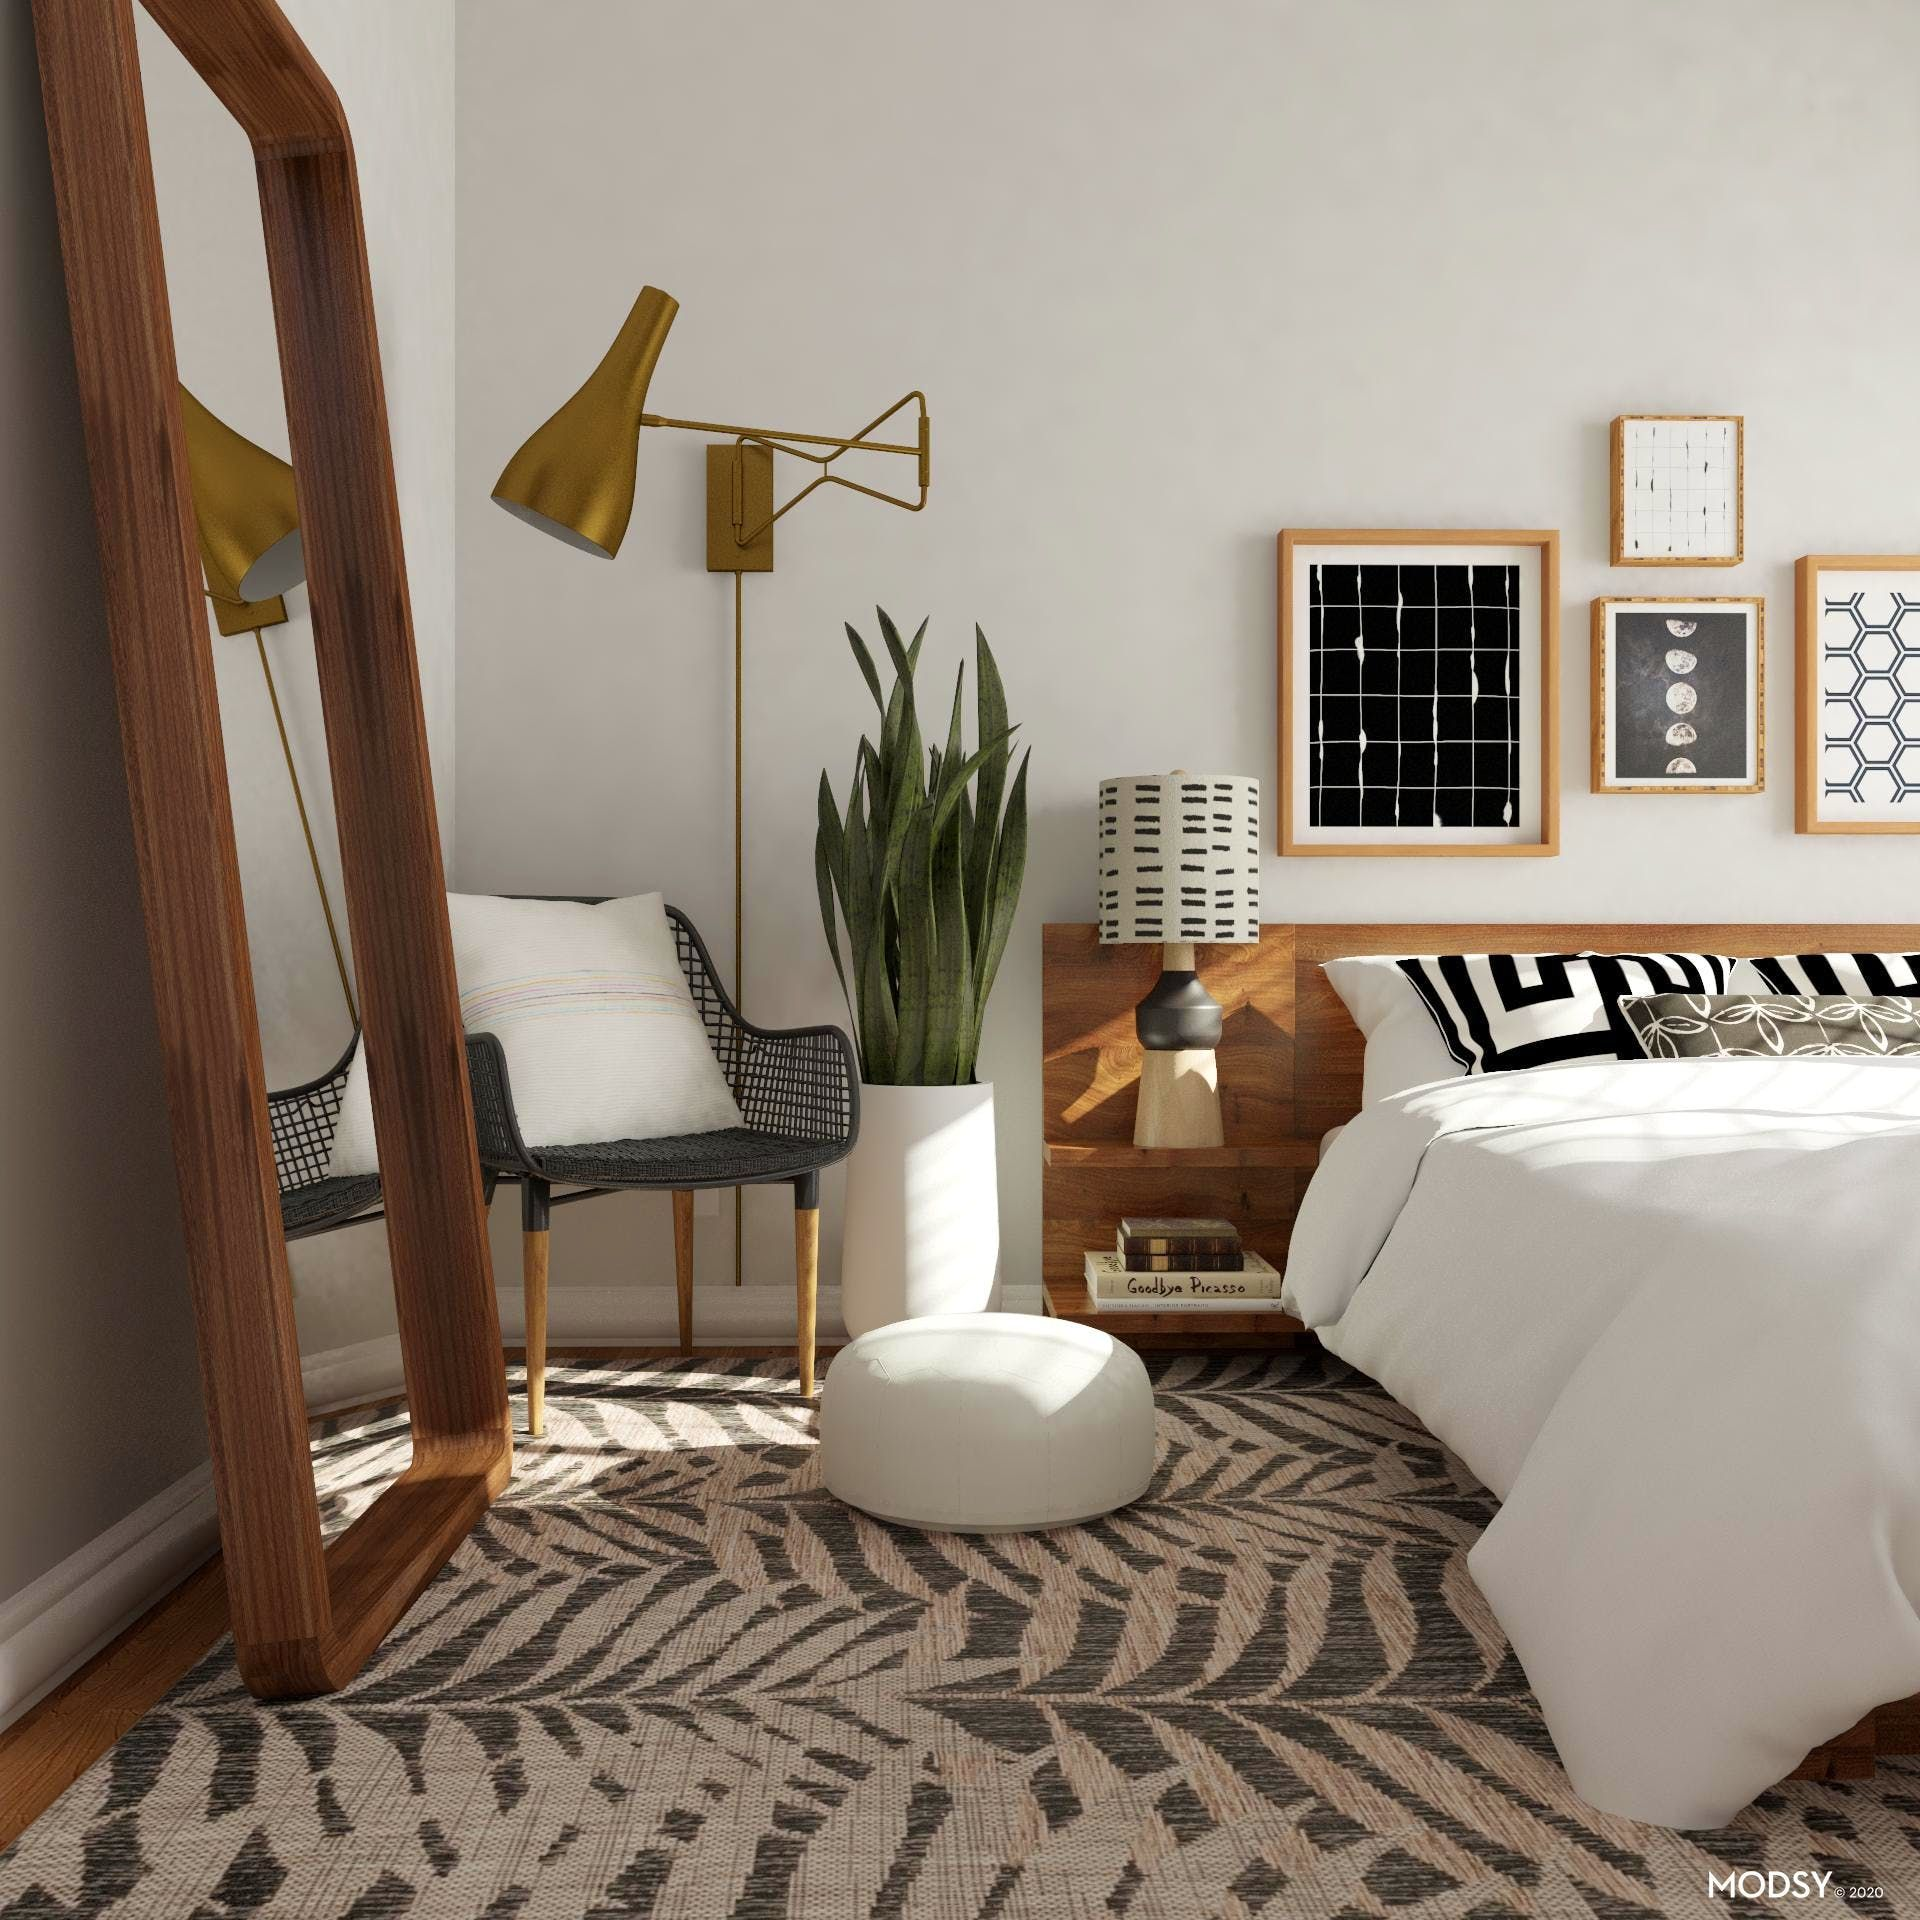 Geomeclectic Bedroom Mid Century Modern Style Bedroom Design Ideas In 2020 Eclectic Bedroom Design Modern Style Bedroom Eclectic Bedroom